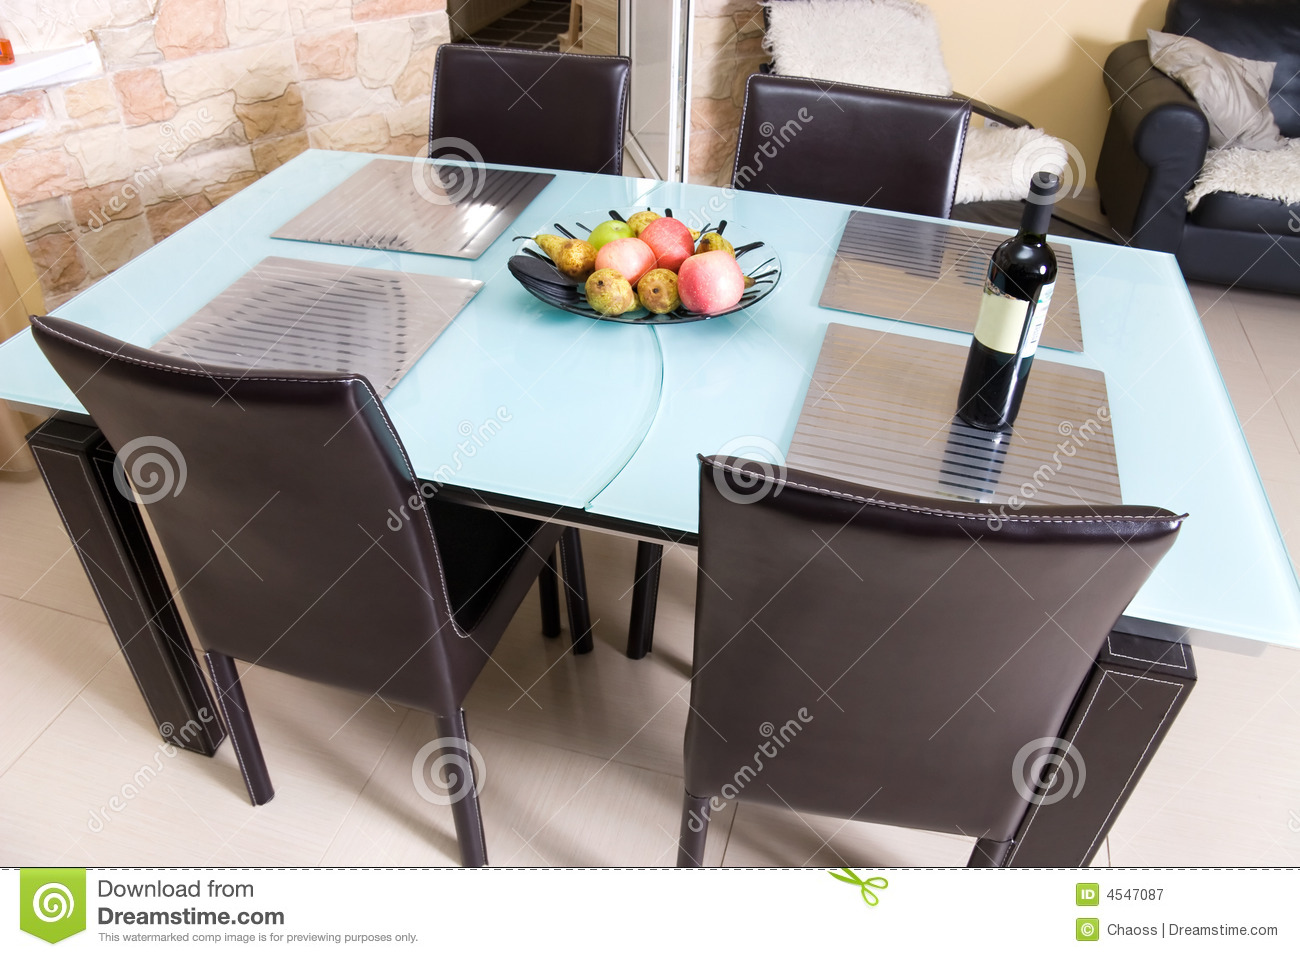 Modern kitchen table fruits wine 4547087.jpg